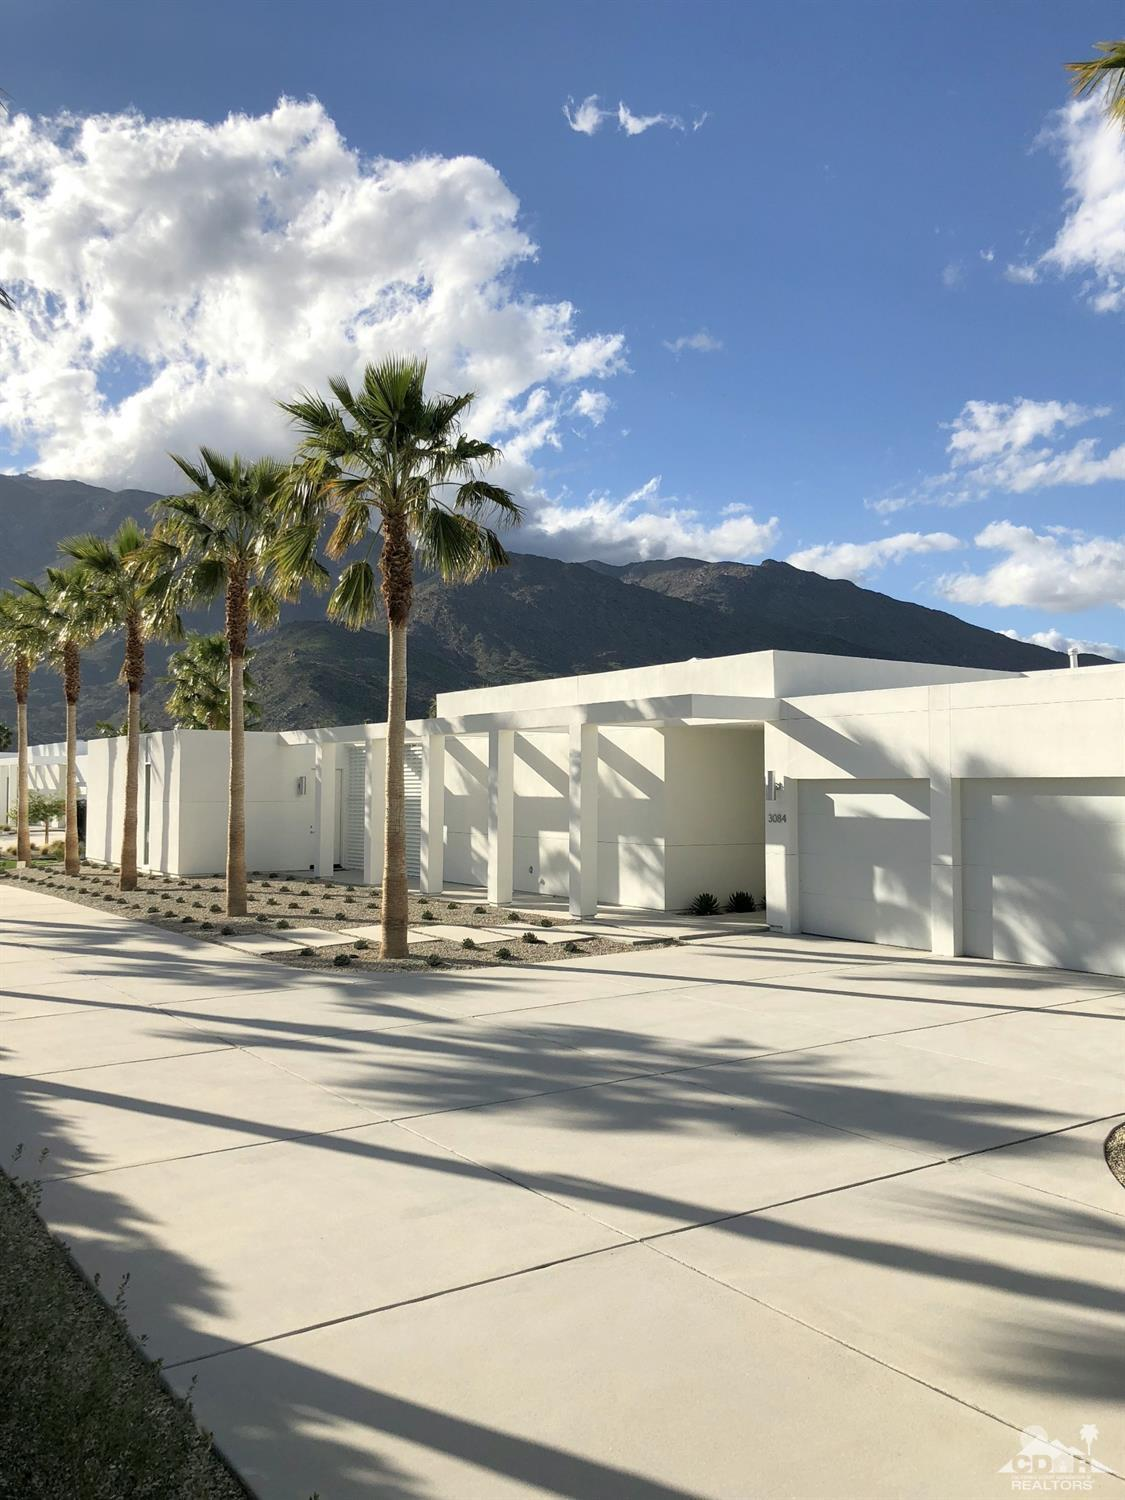 3084 Linea Terrace, Palm Springs, California 92264, 4 Bedrooms Bedrooms, ,5 BathroomsBathrooms,Residential,Sold,3084 Linea Terrace,219016485